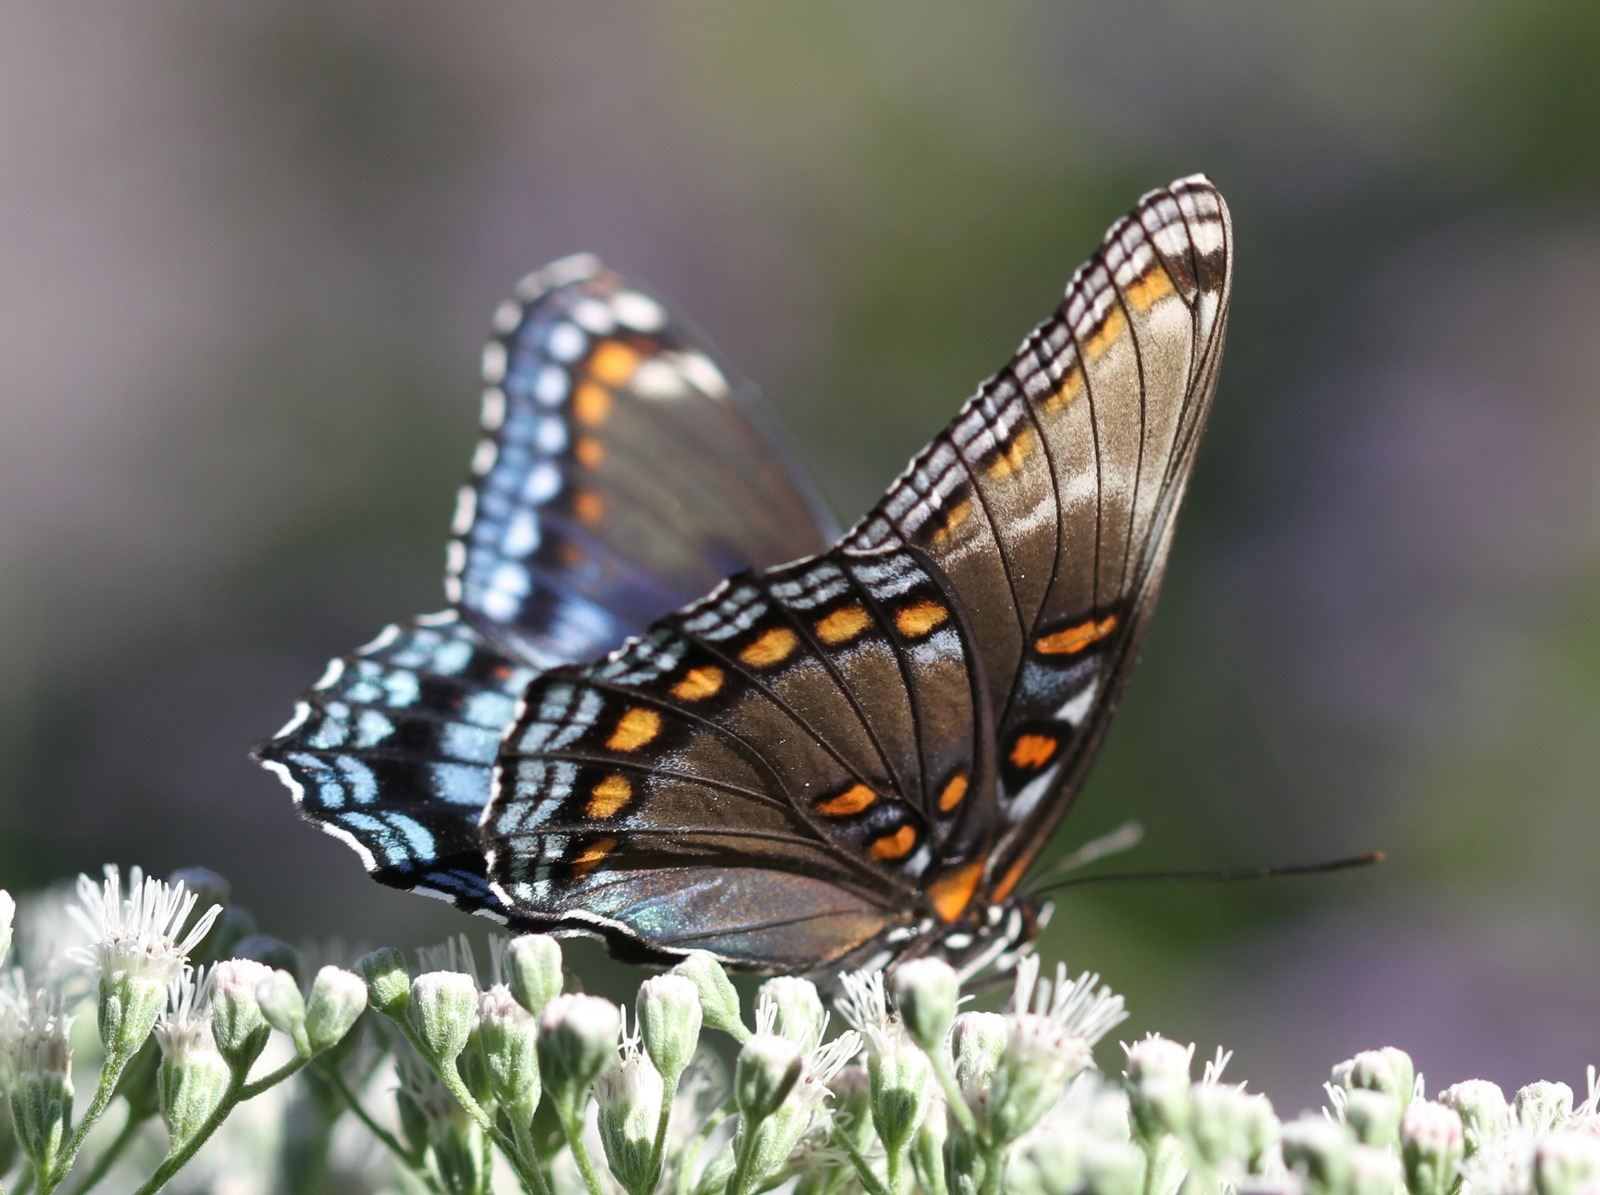 This red-spotted purple, photo'd by Dave Amadio in Mantua, GLO, on 9-25-16 shows faint white marks -- a pattern we have documented on a handful of rsp's over the years. We have yet to record a white admiral in South Jersey, however, so it seems this marks more likely reflect genetic variation in rsp's than hybrid ancestry.